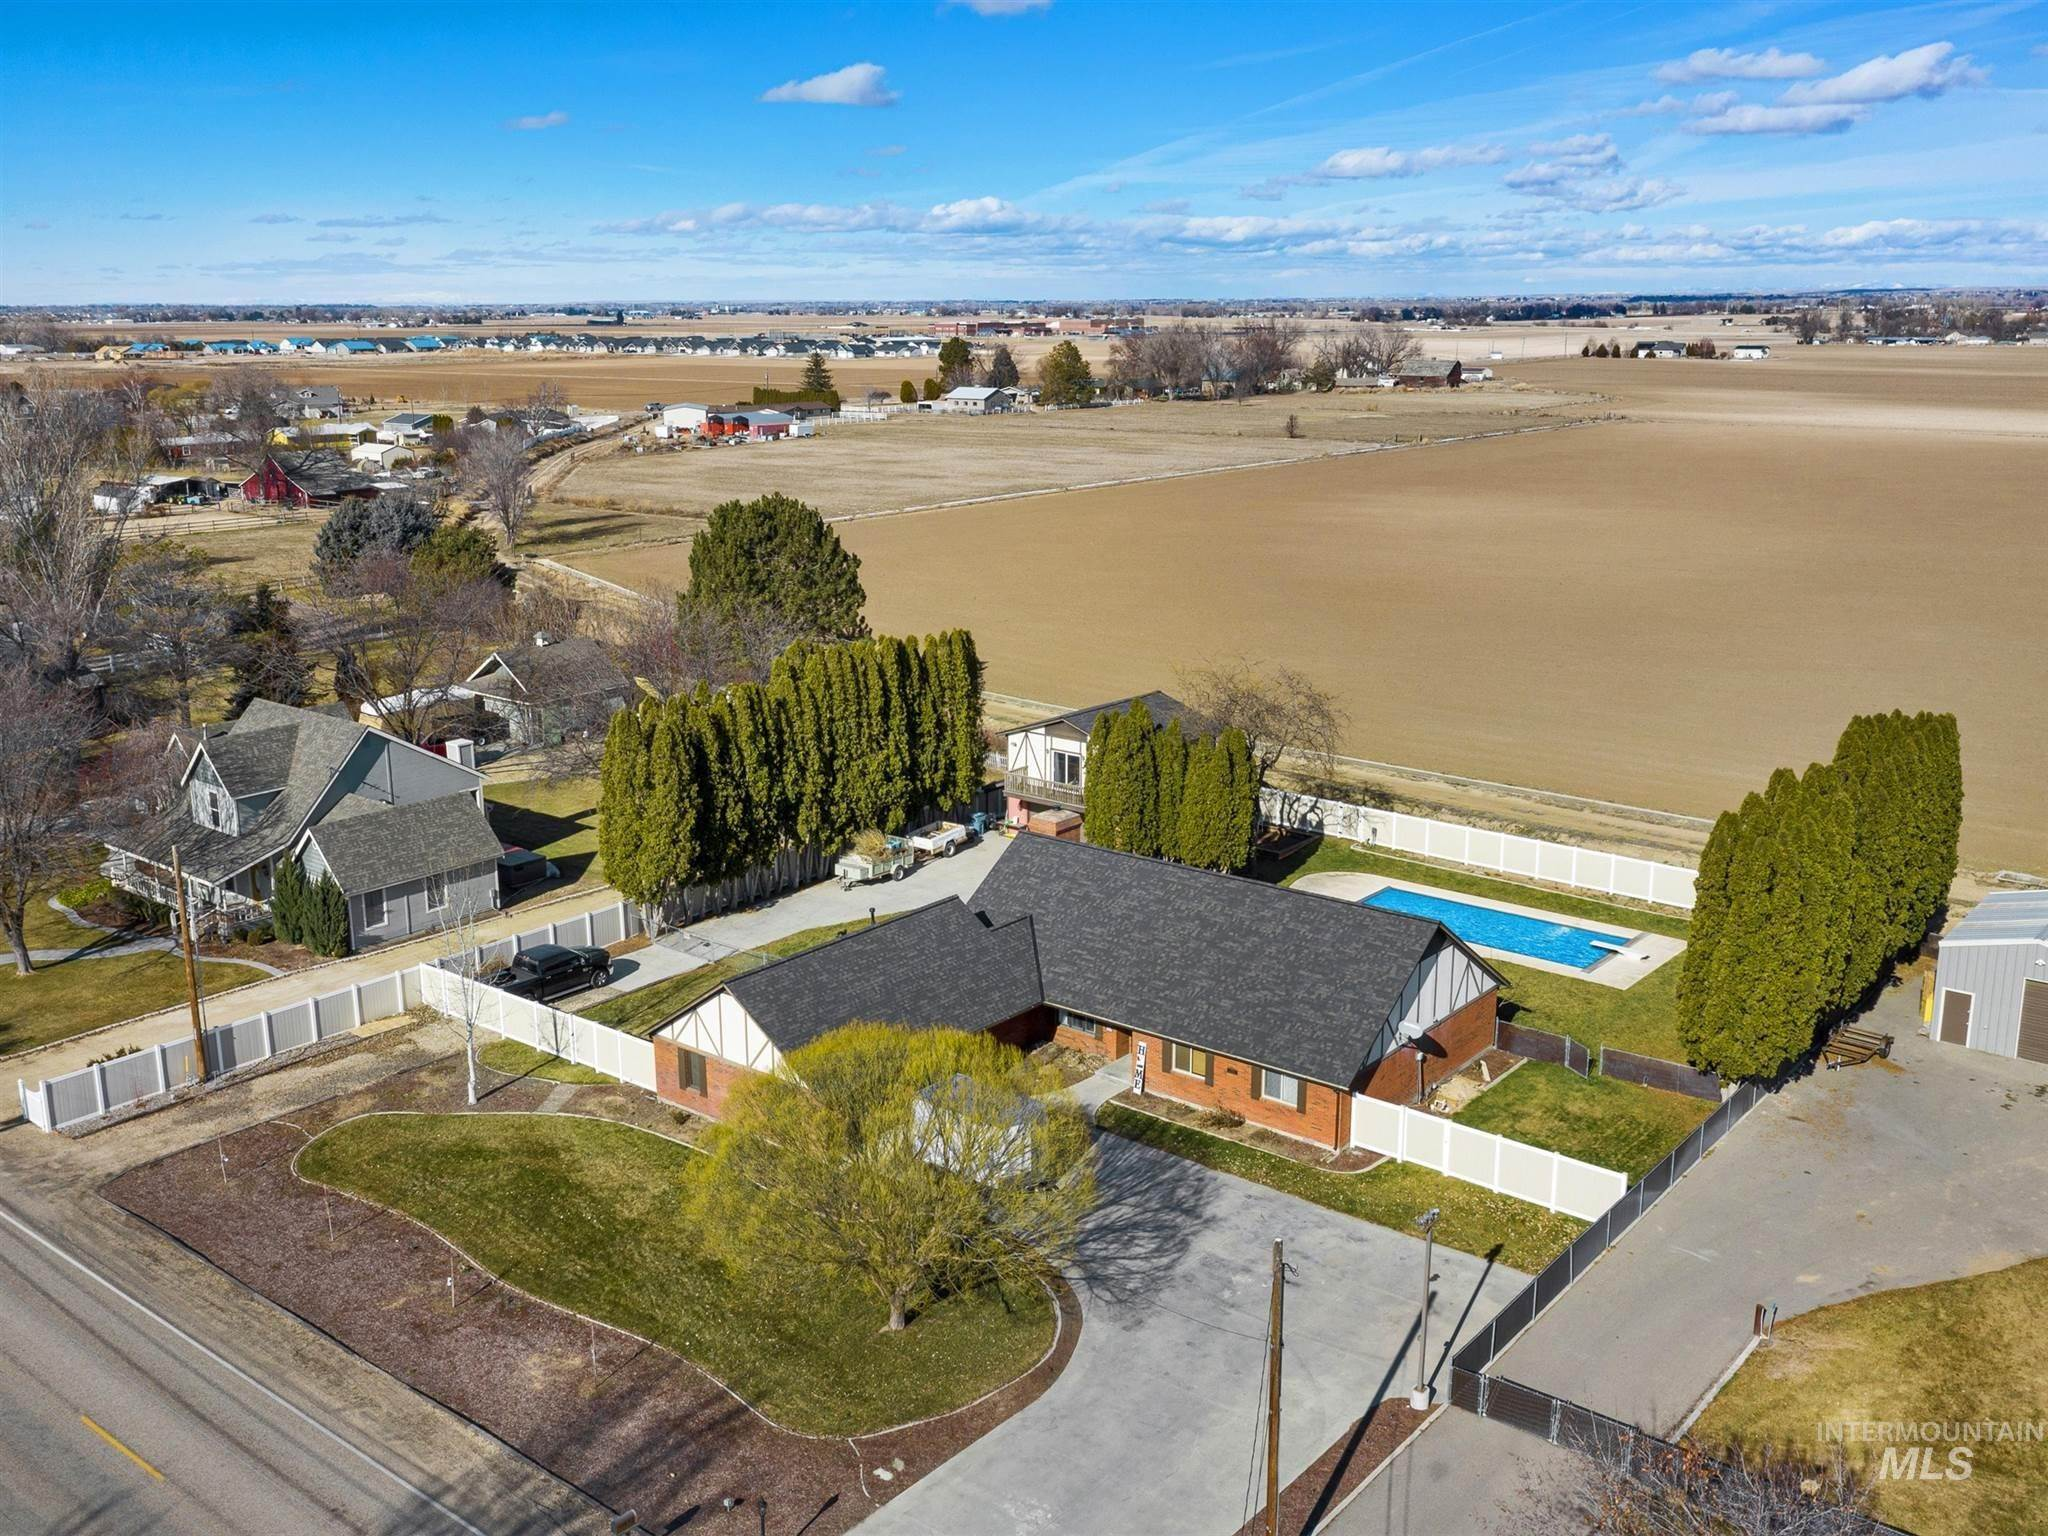 Single Family Homes at Nampa, Idaho 83687